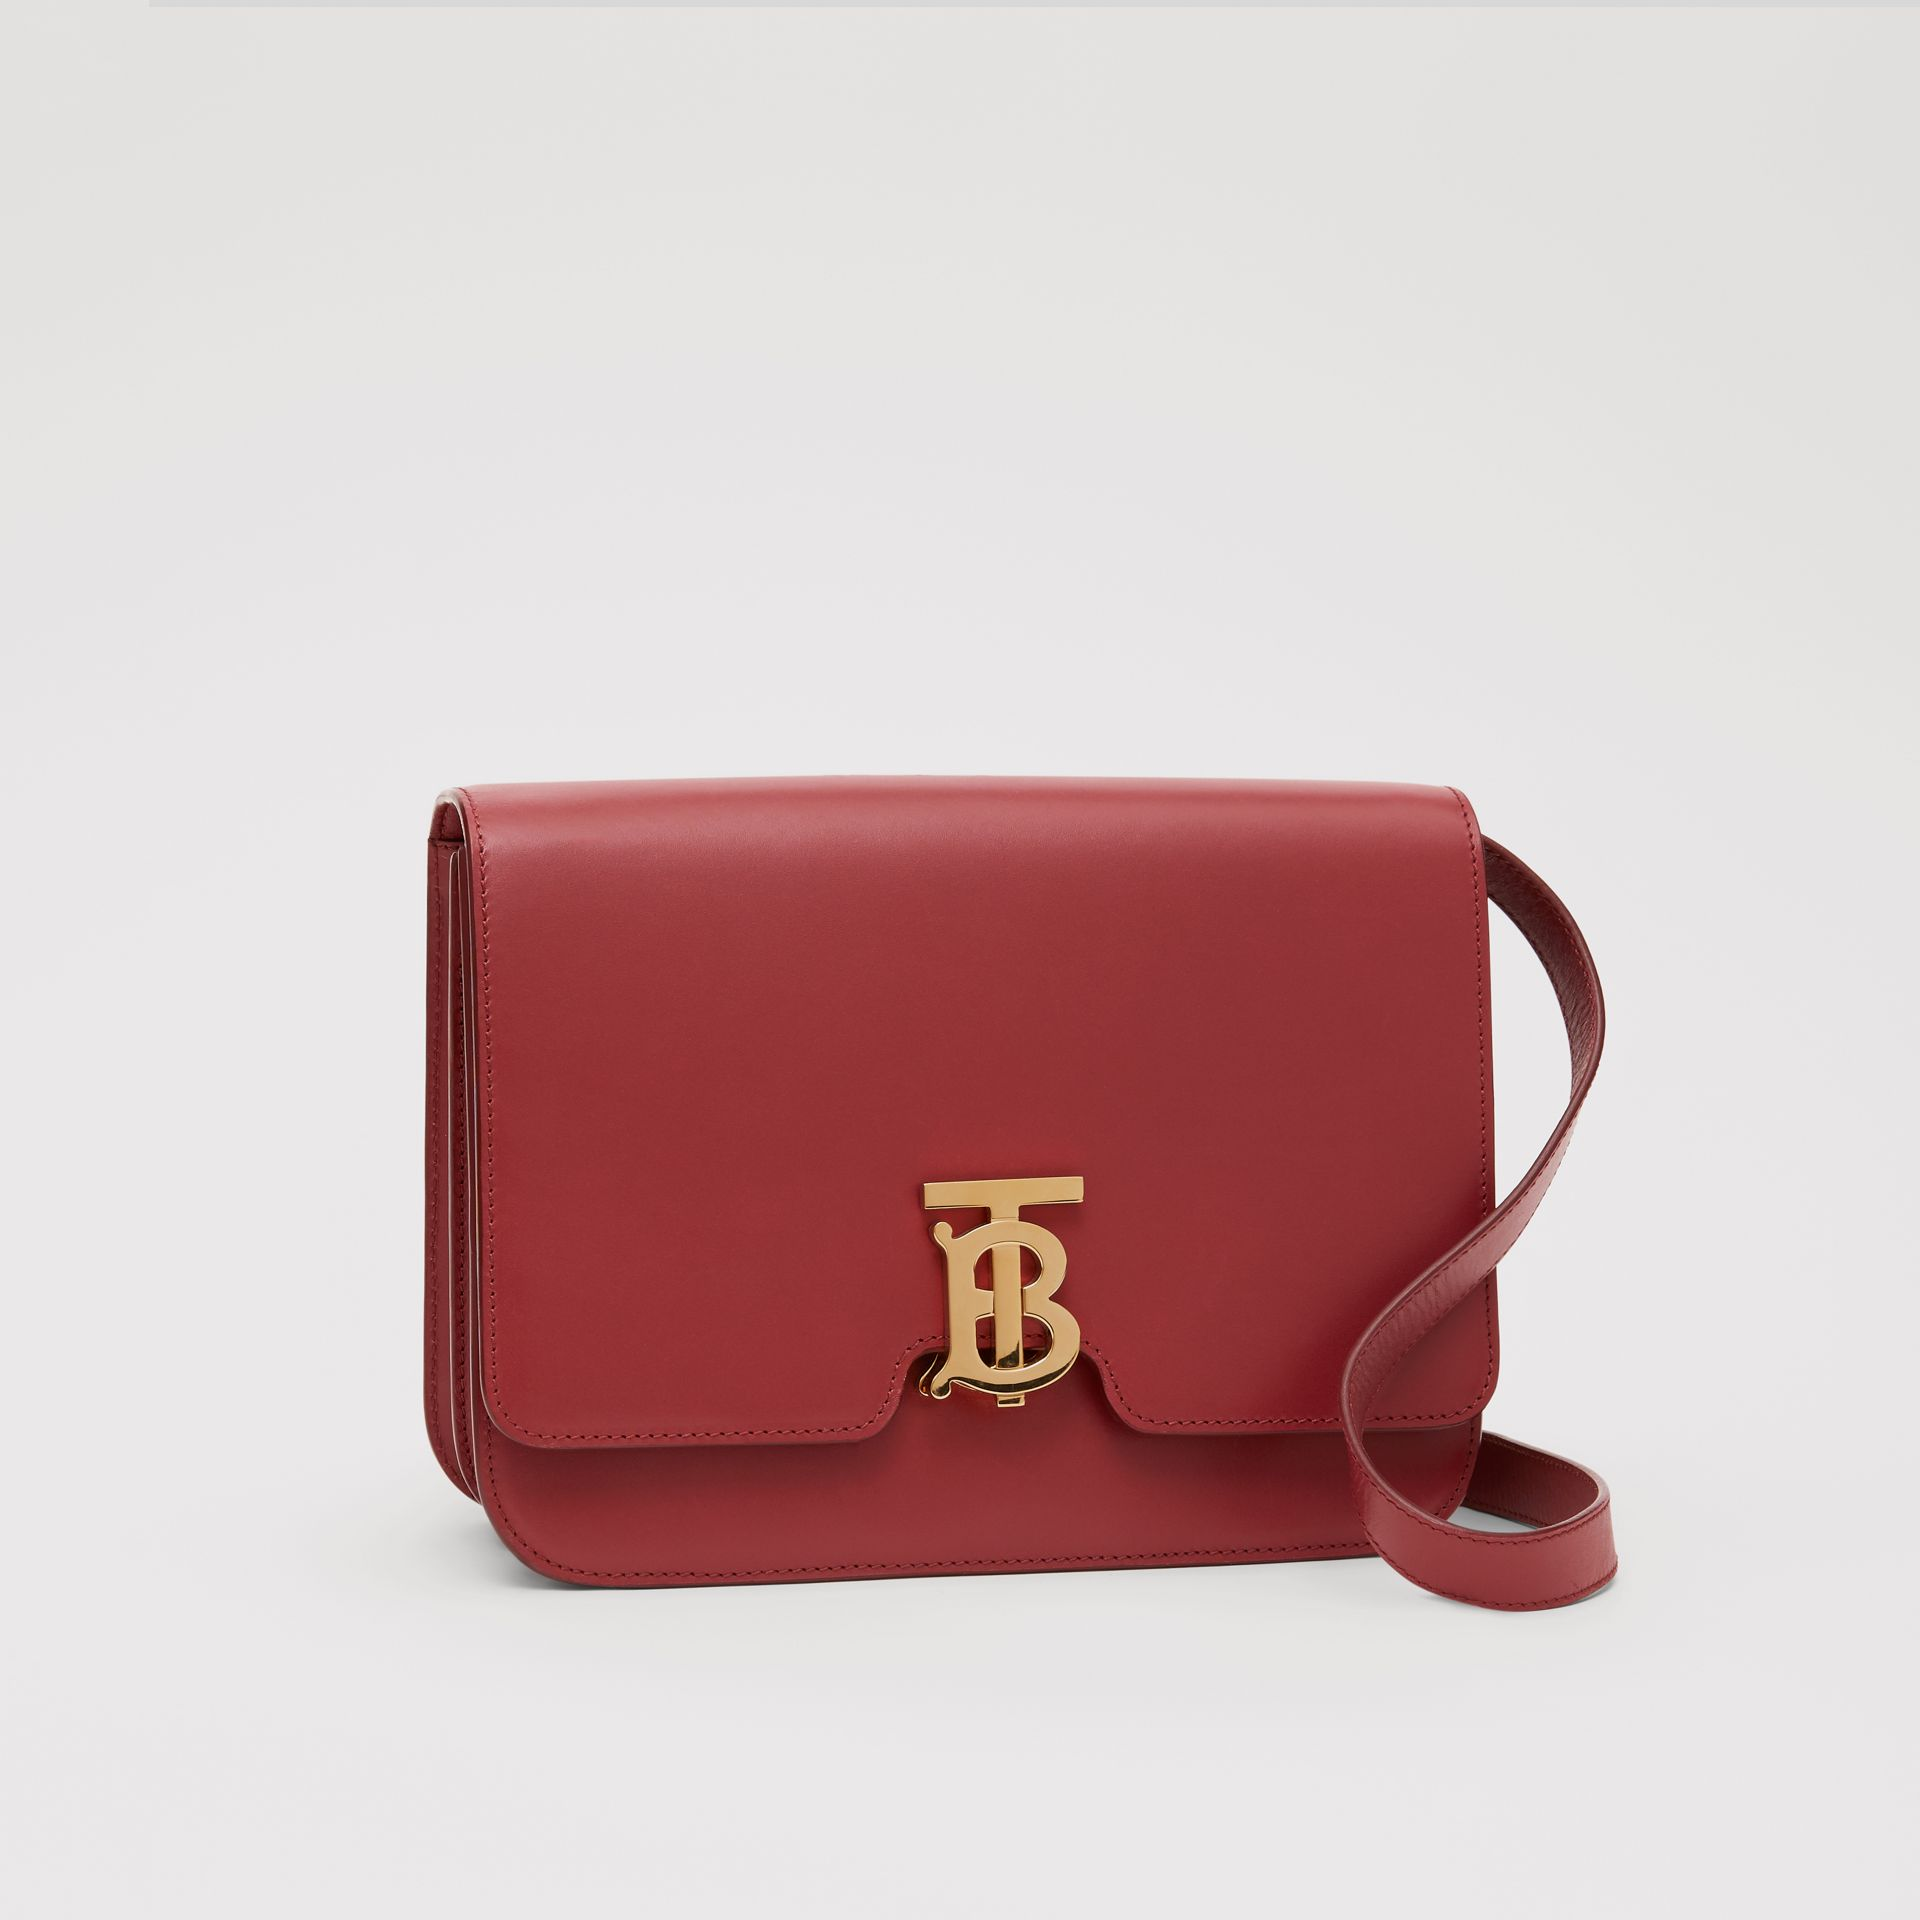 Medium Leather TB Bag in Crimson - Women | Burberry - gallery image 6